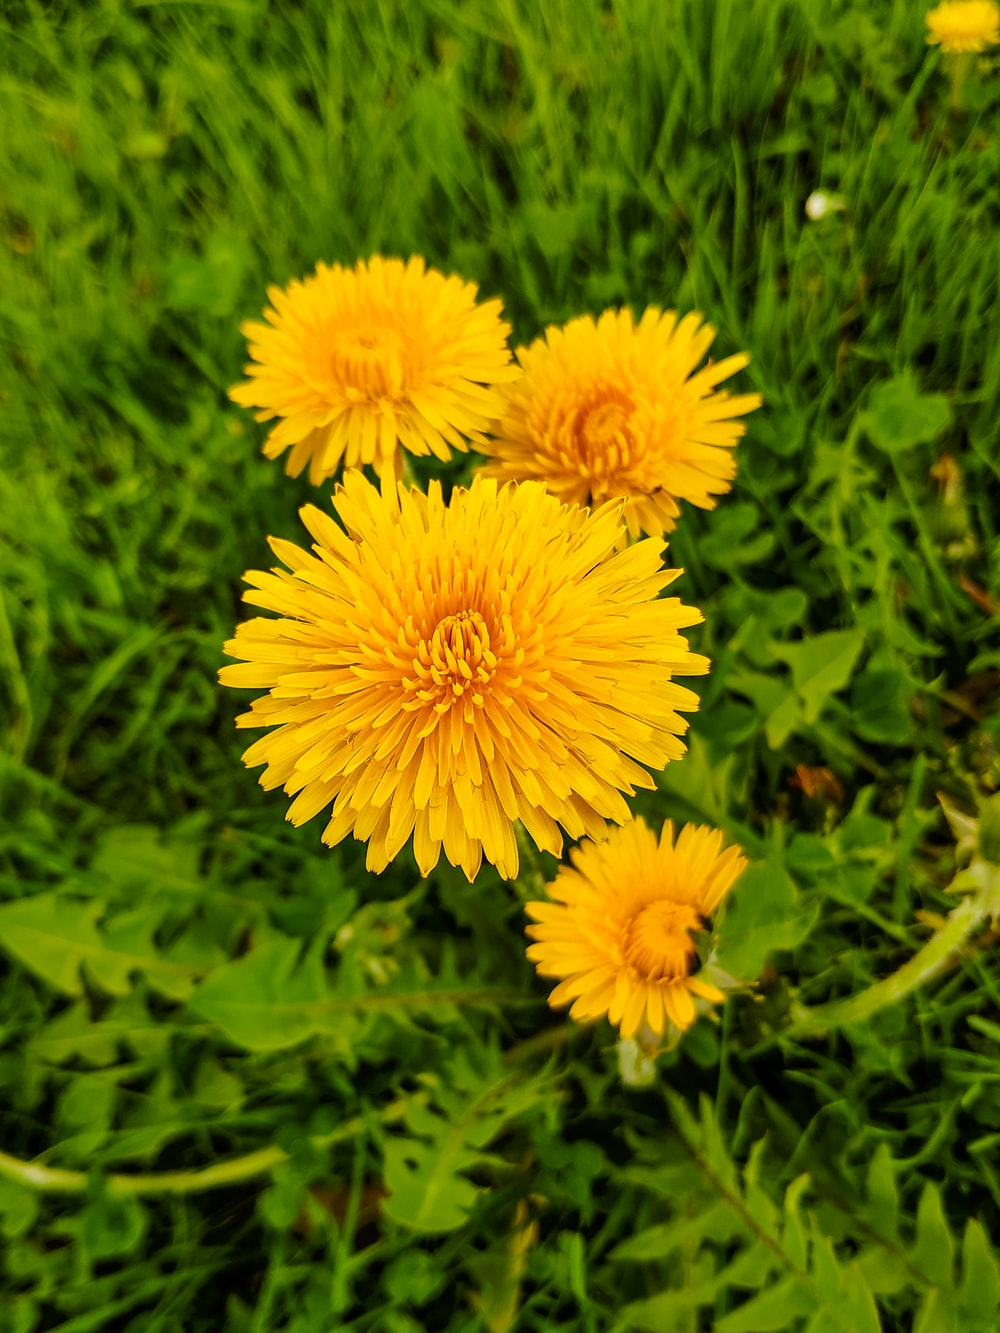 four yellow-petaled flowers